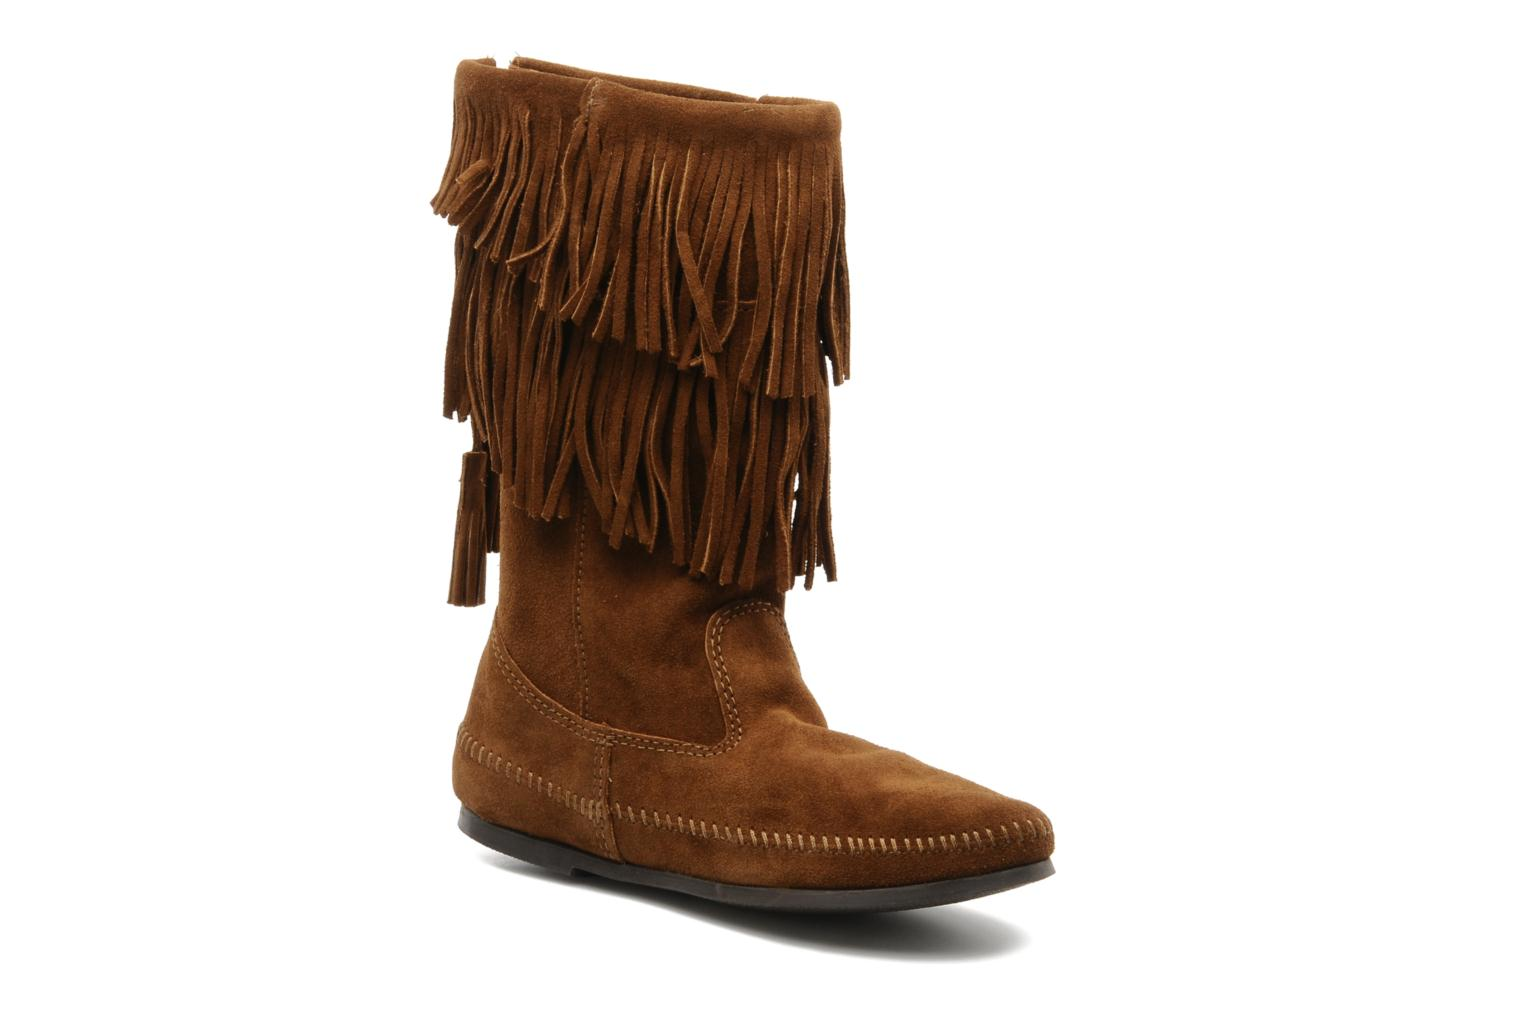 Bottines et boots Minnetonka CALF HI 2LAYER FRINGE Marron vue détail/paire